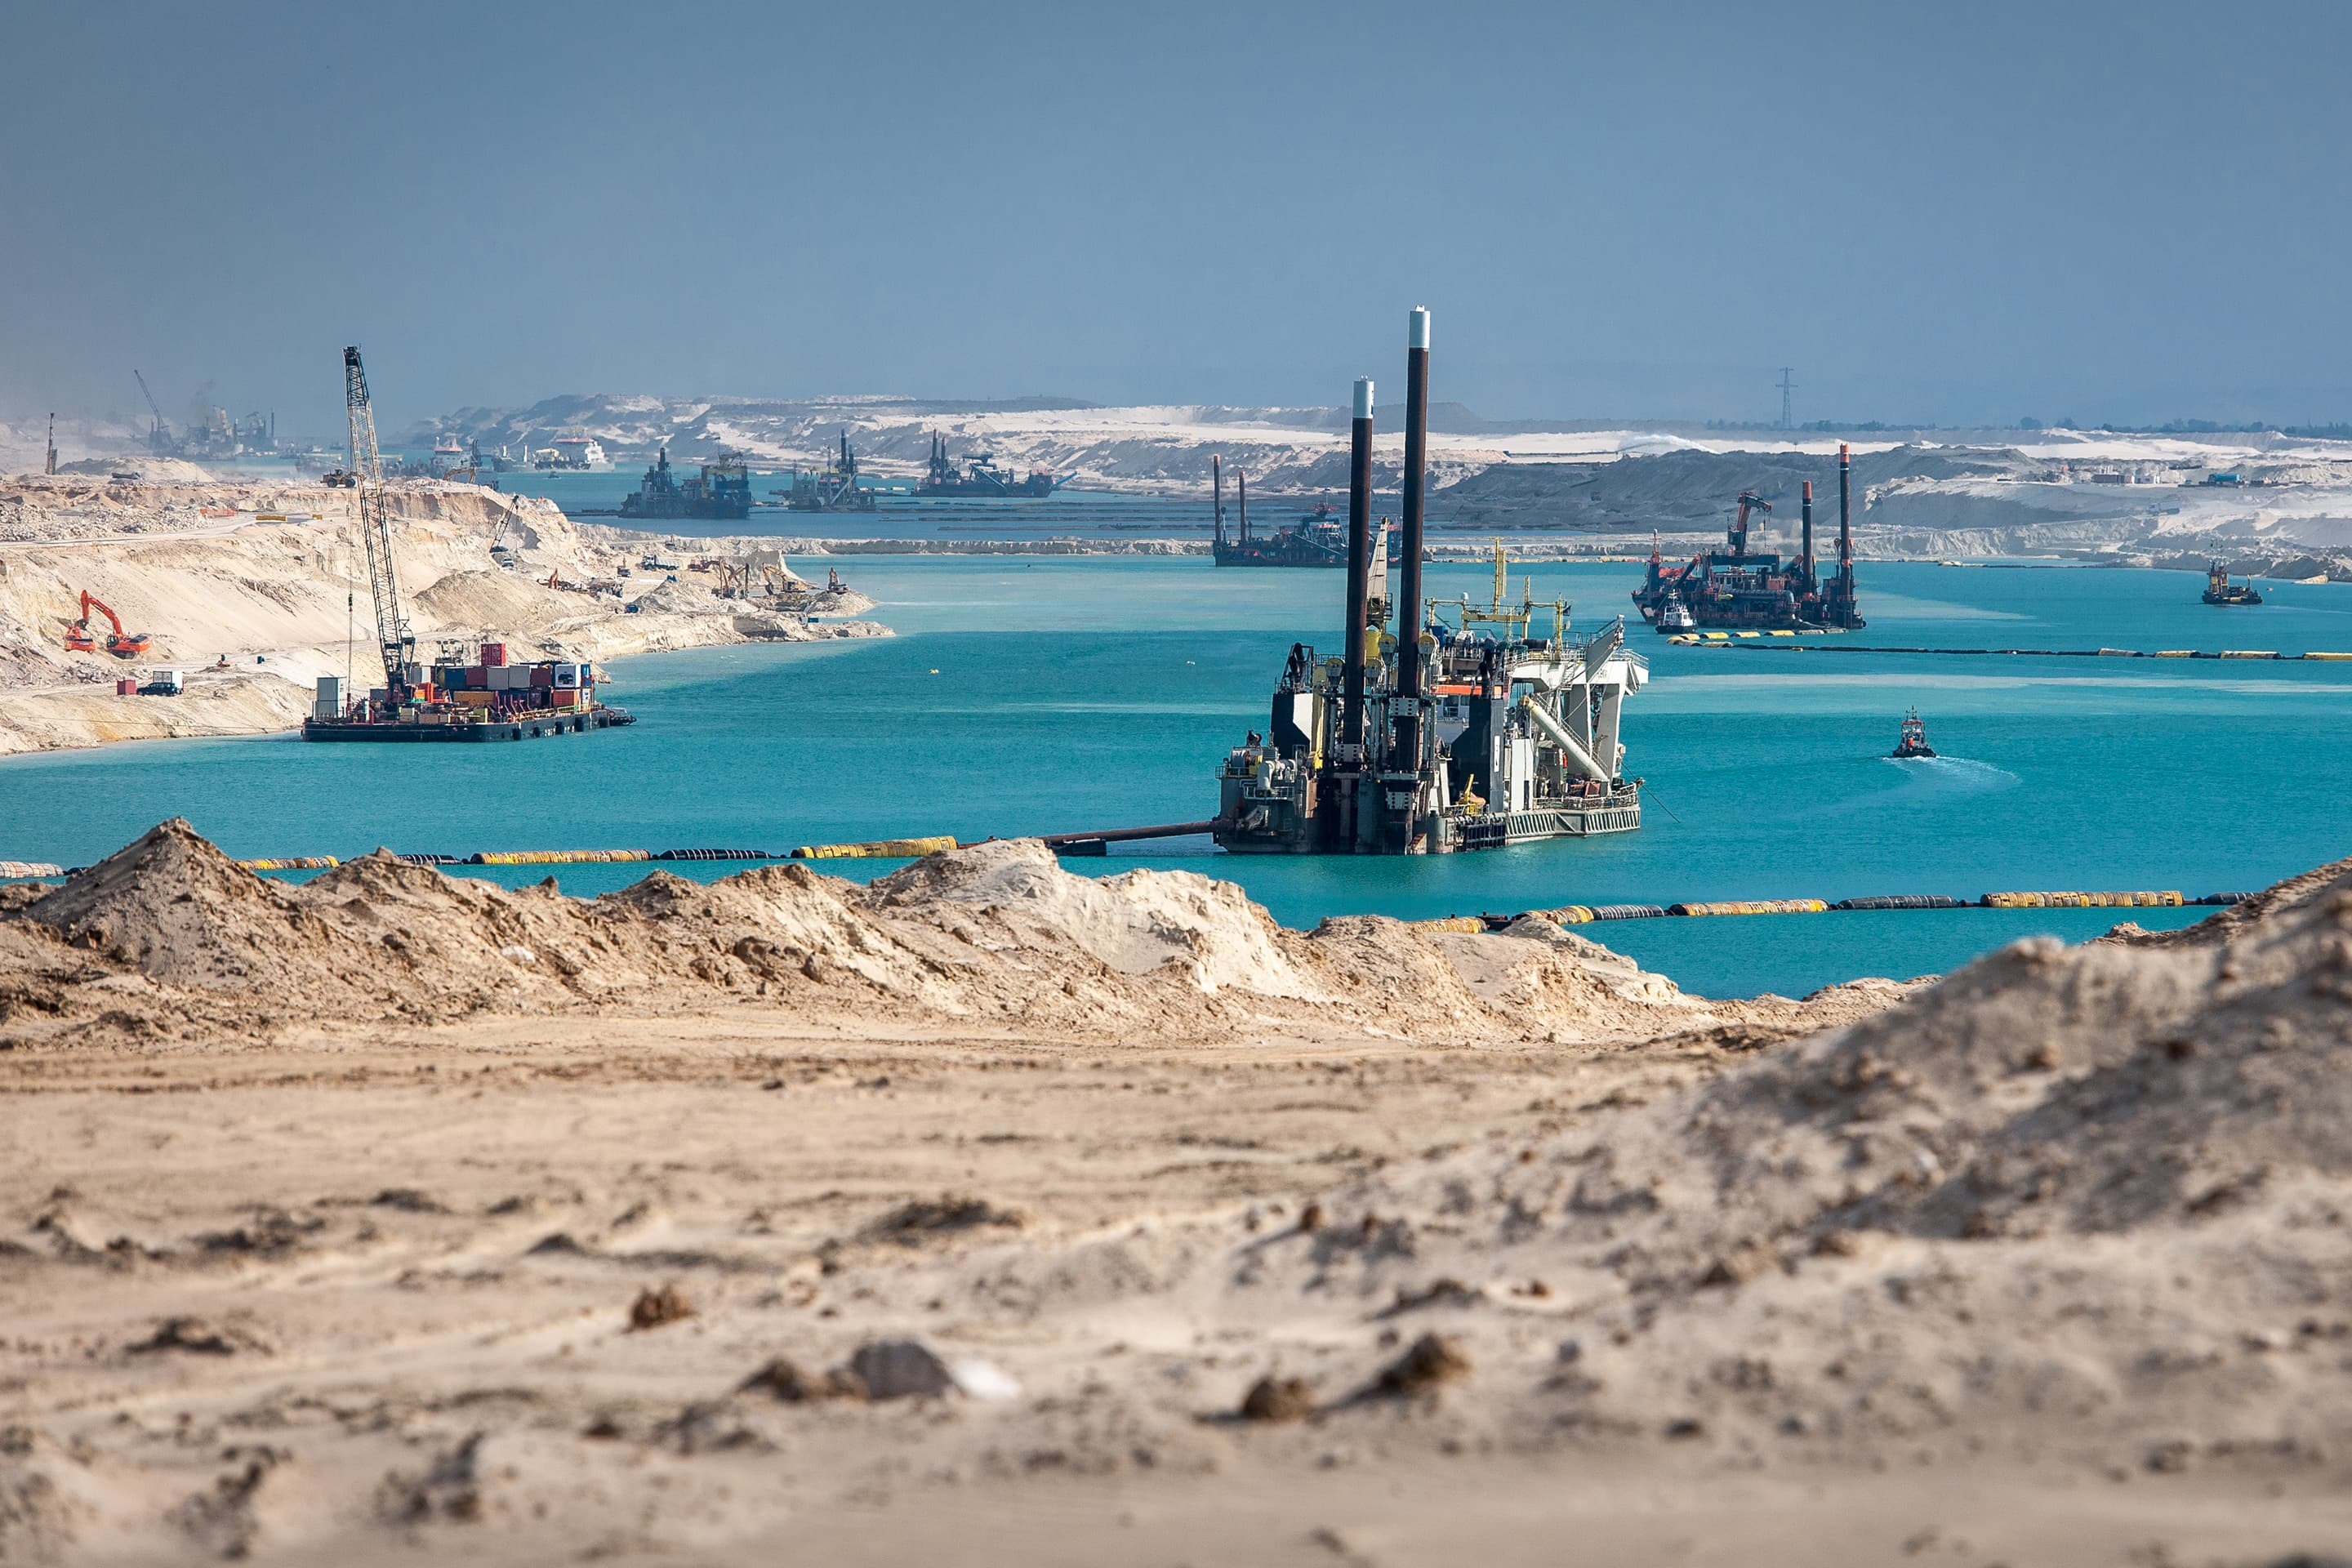 Construction the new 35-kilometer parallel canal